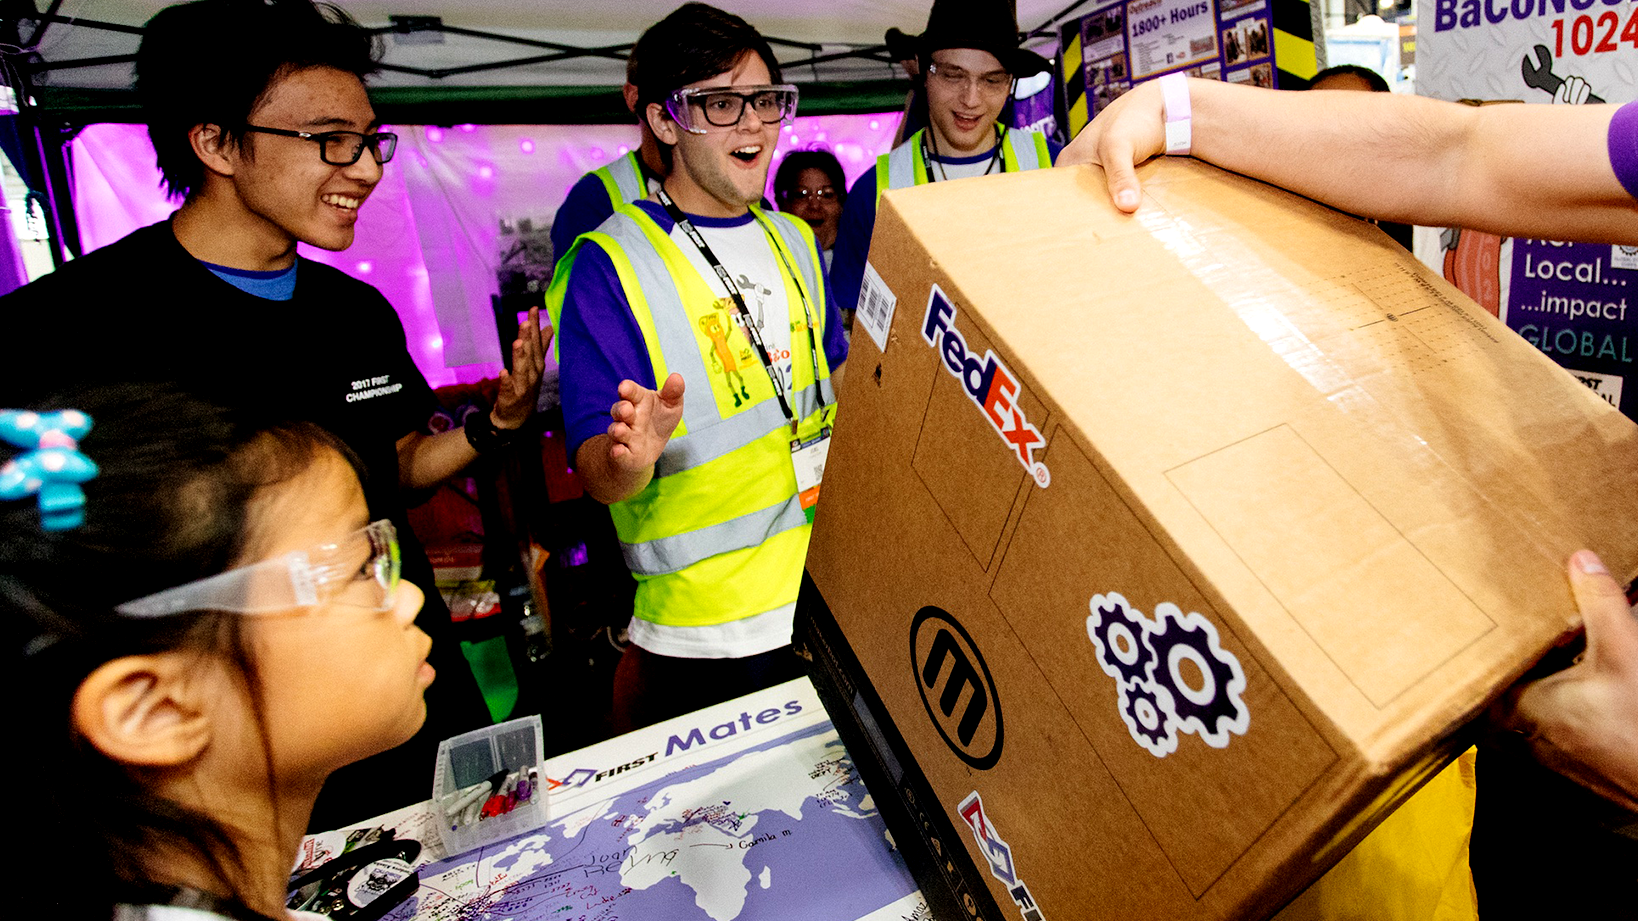 Man excited at FedEx Innovation Challenge